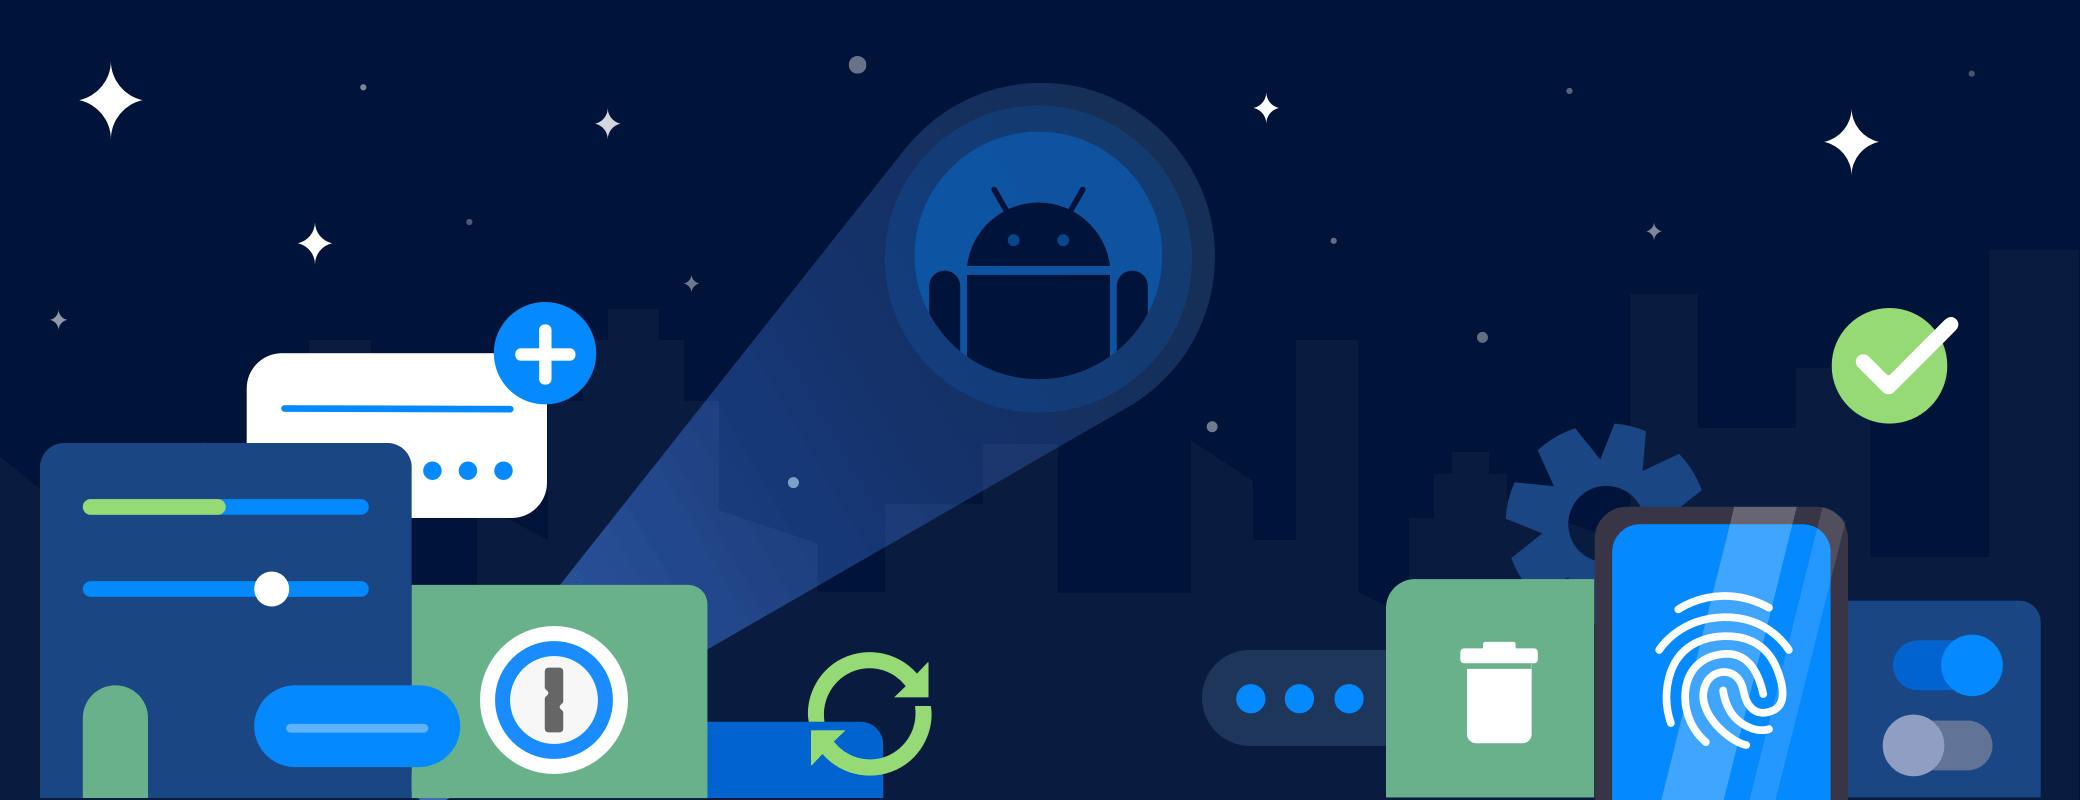 1Password 7.2 for Android: the Dark Theme Rises